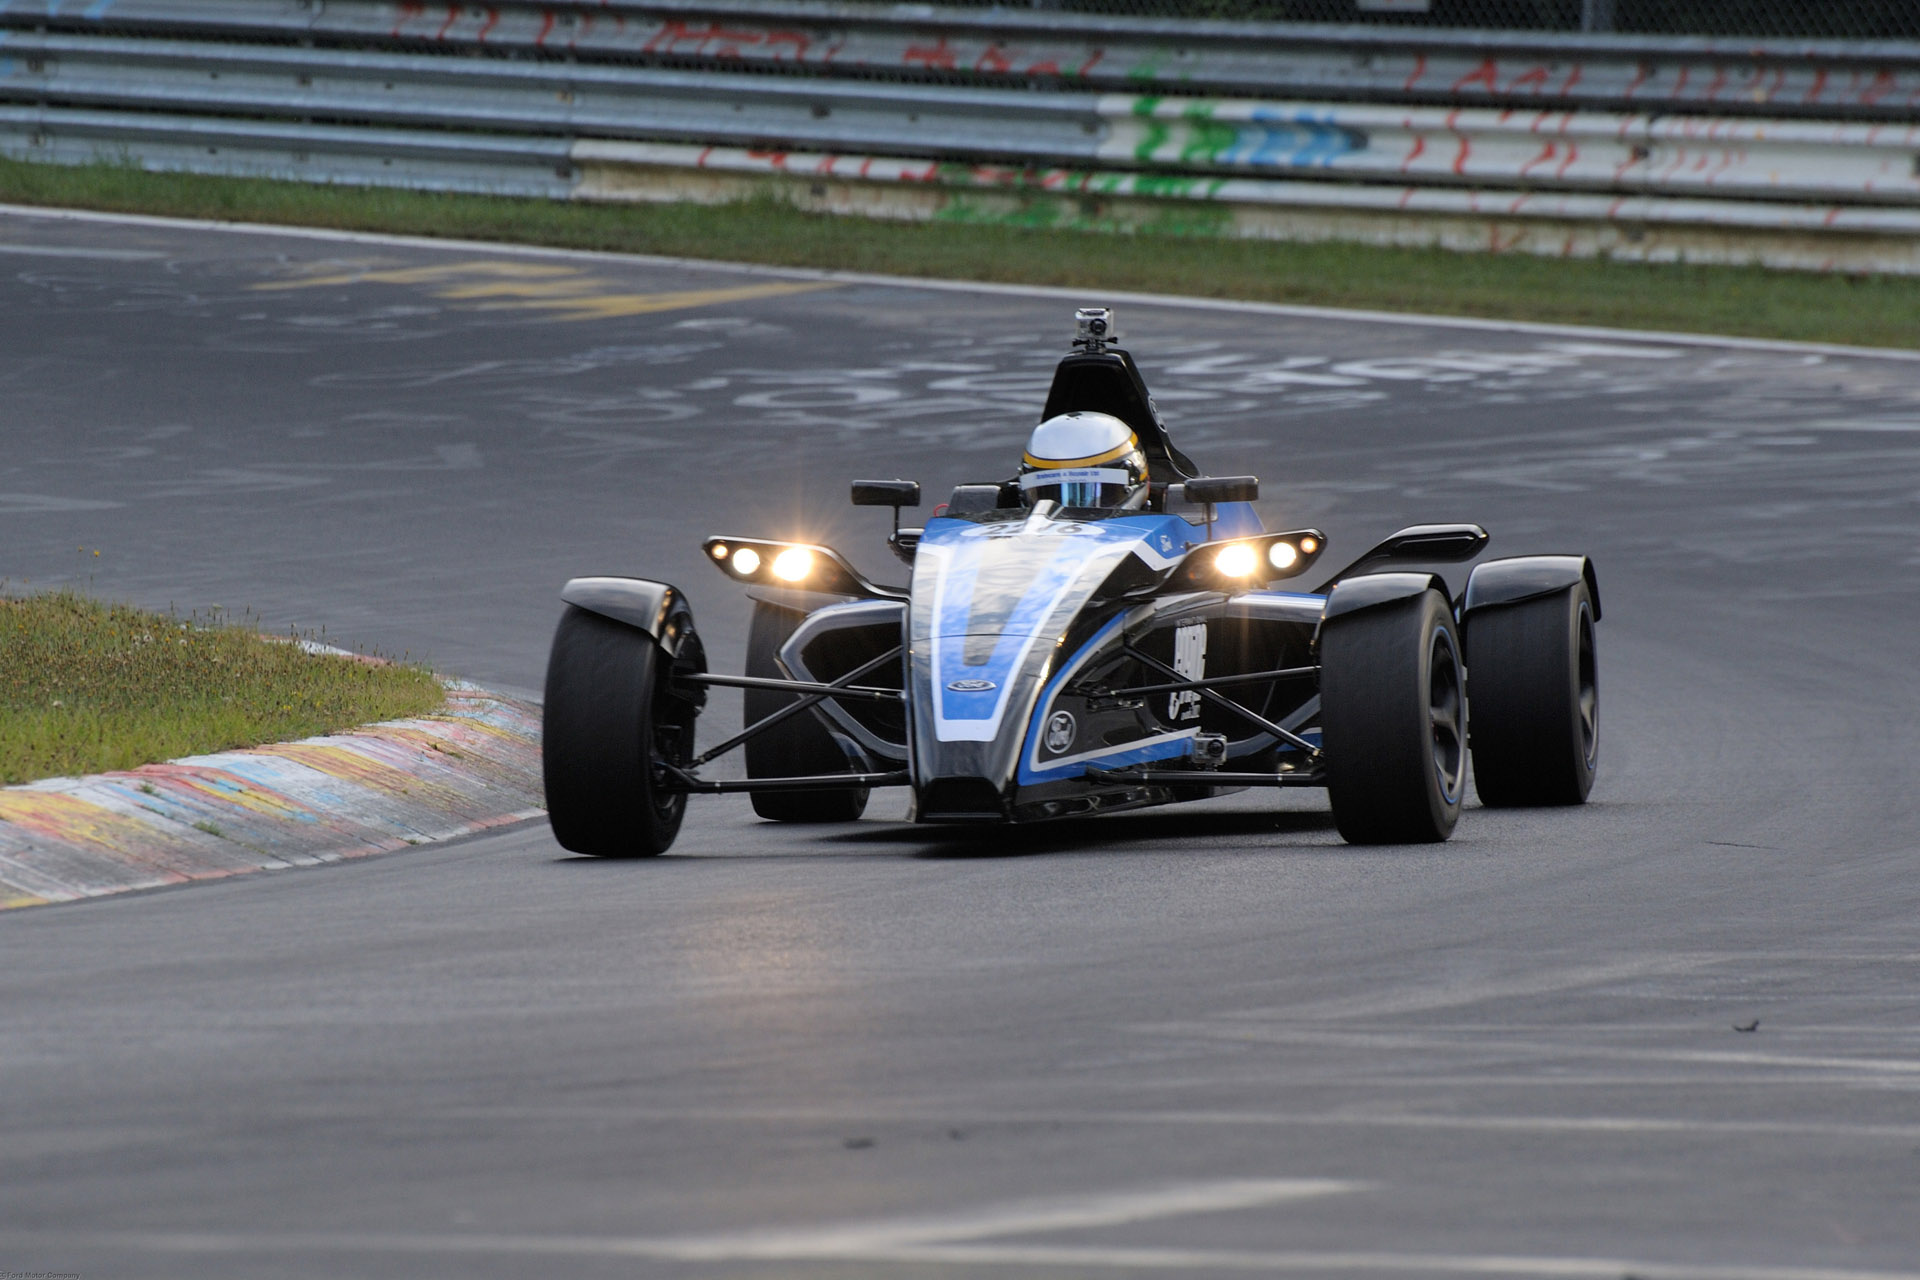 Ford 1.0-litre EcoBoost engine powers unique road-going Formula Ford race car to Nürburgring record. (09/03/12)